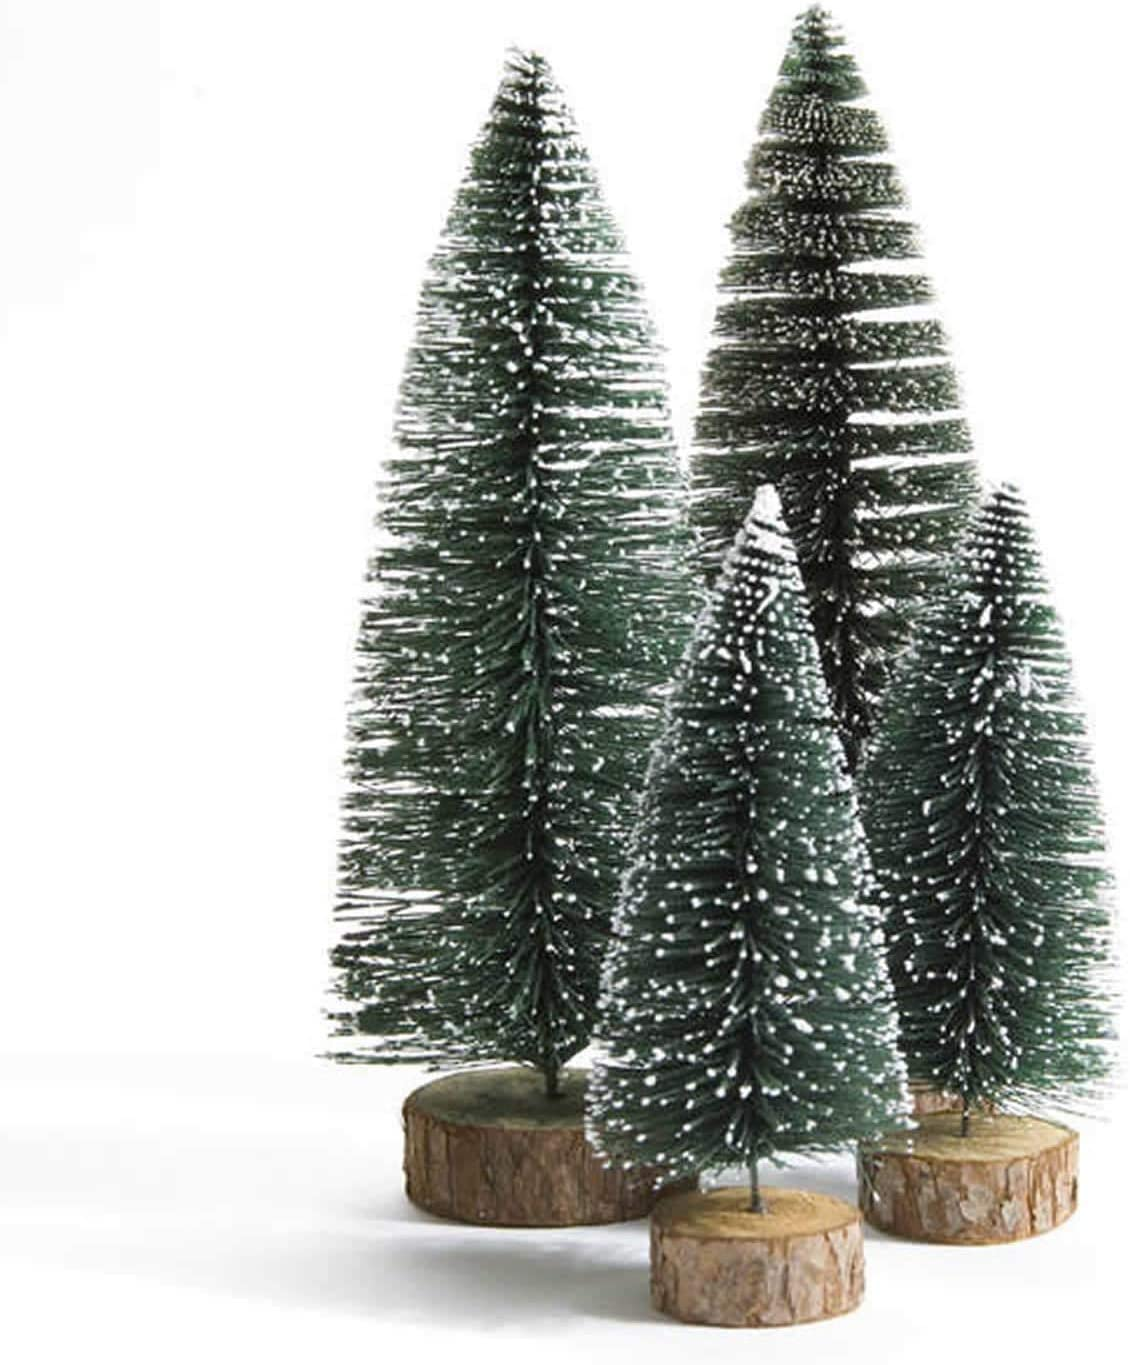 Dream Loom Mini Christmas Tree, A Set of 4 Sizes Artificial Small Tiny Pine Tree with Wooden Bases, for Xmas Holiday Room Tabletop Decor (Green)